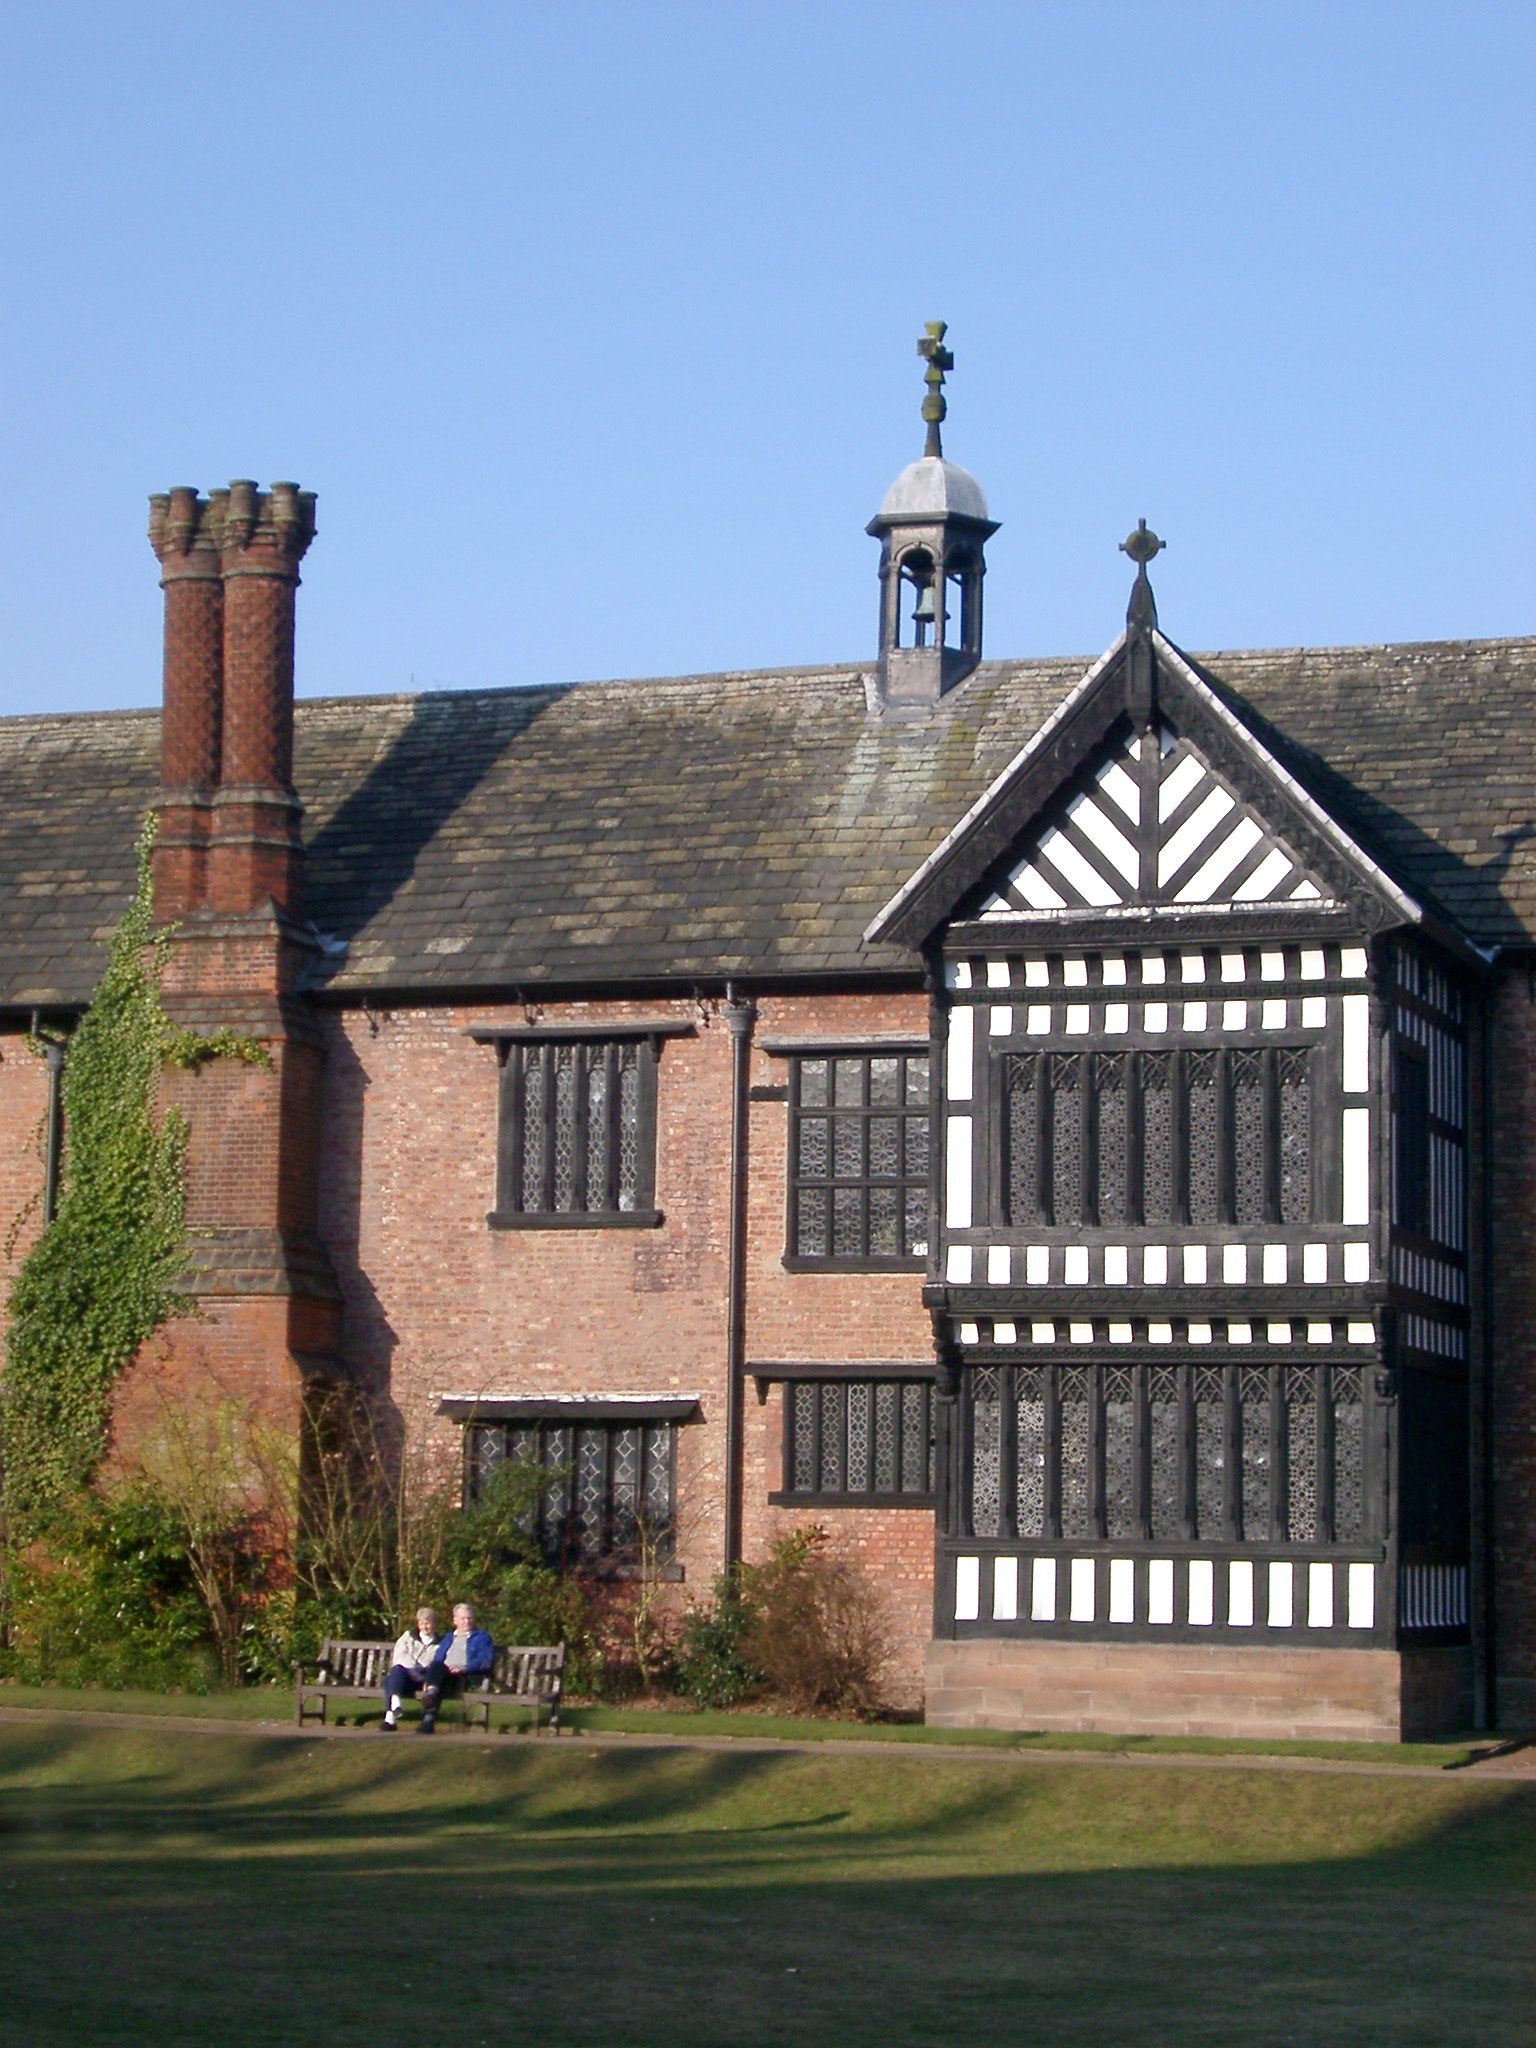 Visitors Sitting on the Bench in Front of the Bramhall Hall, a Tudor manor house in Bramhall, within the Metropolitan Borough of Stockport, Greater Manchester, England.